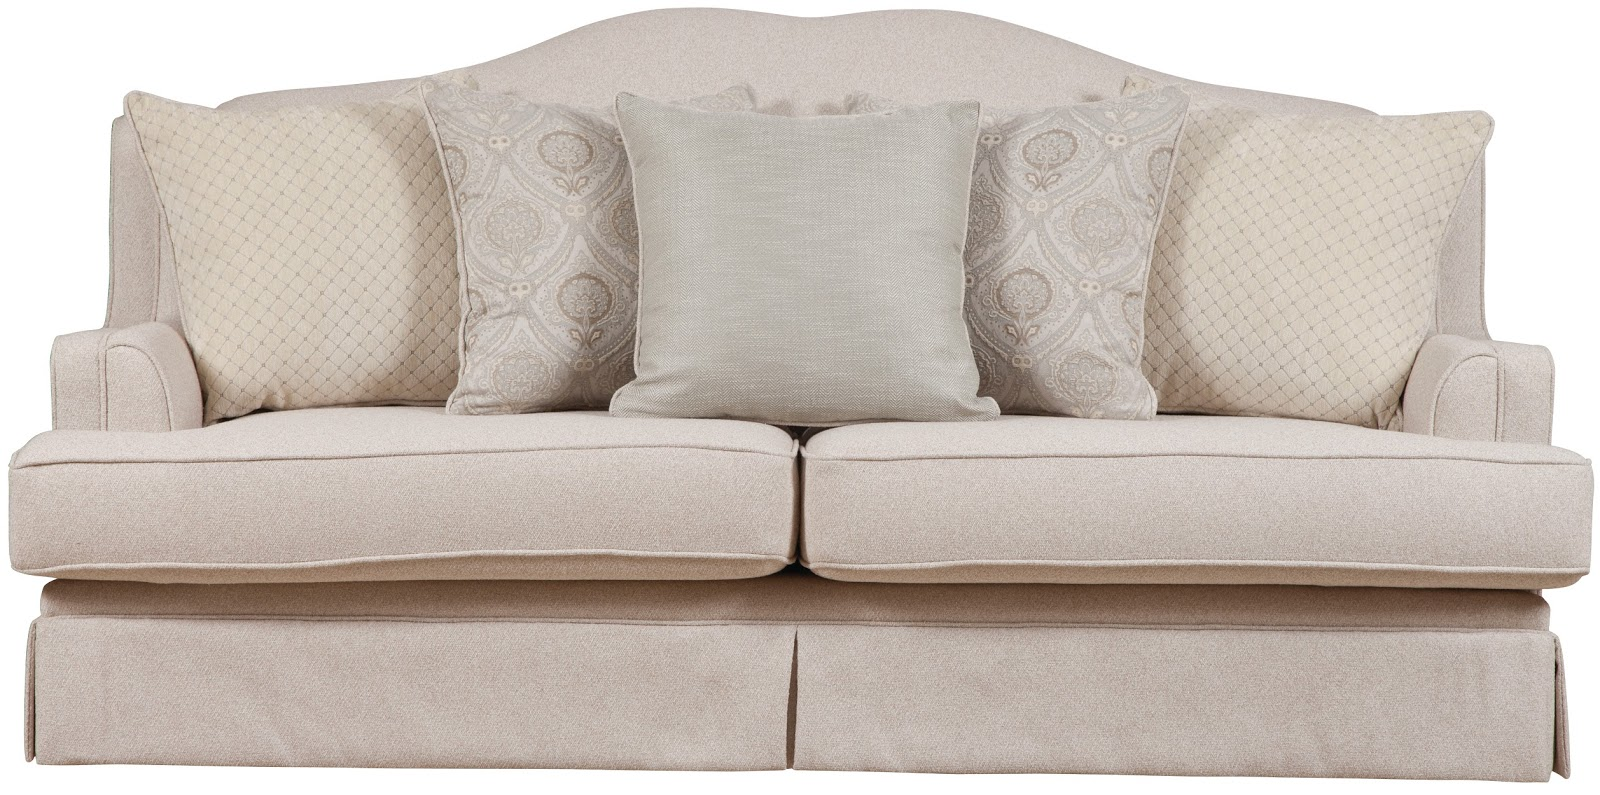 sofa in malaysia designer sofas and chairs uk fella design export collection